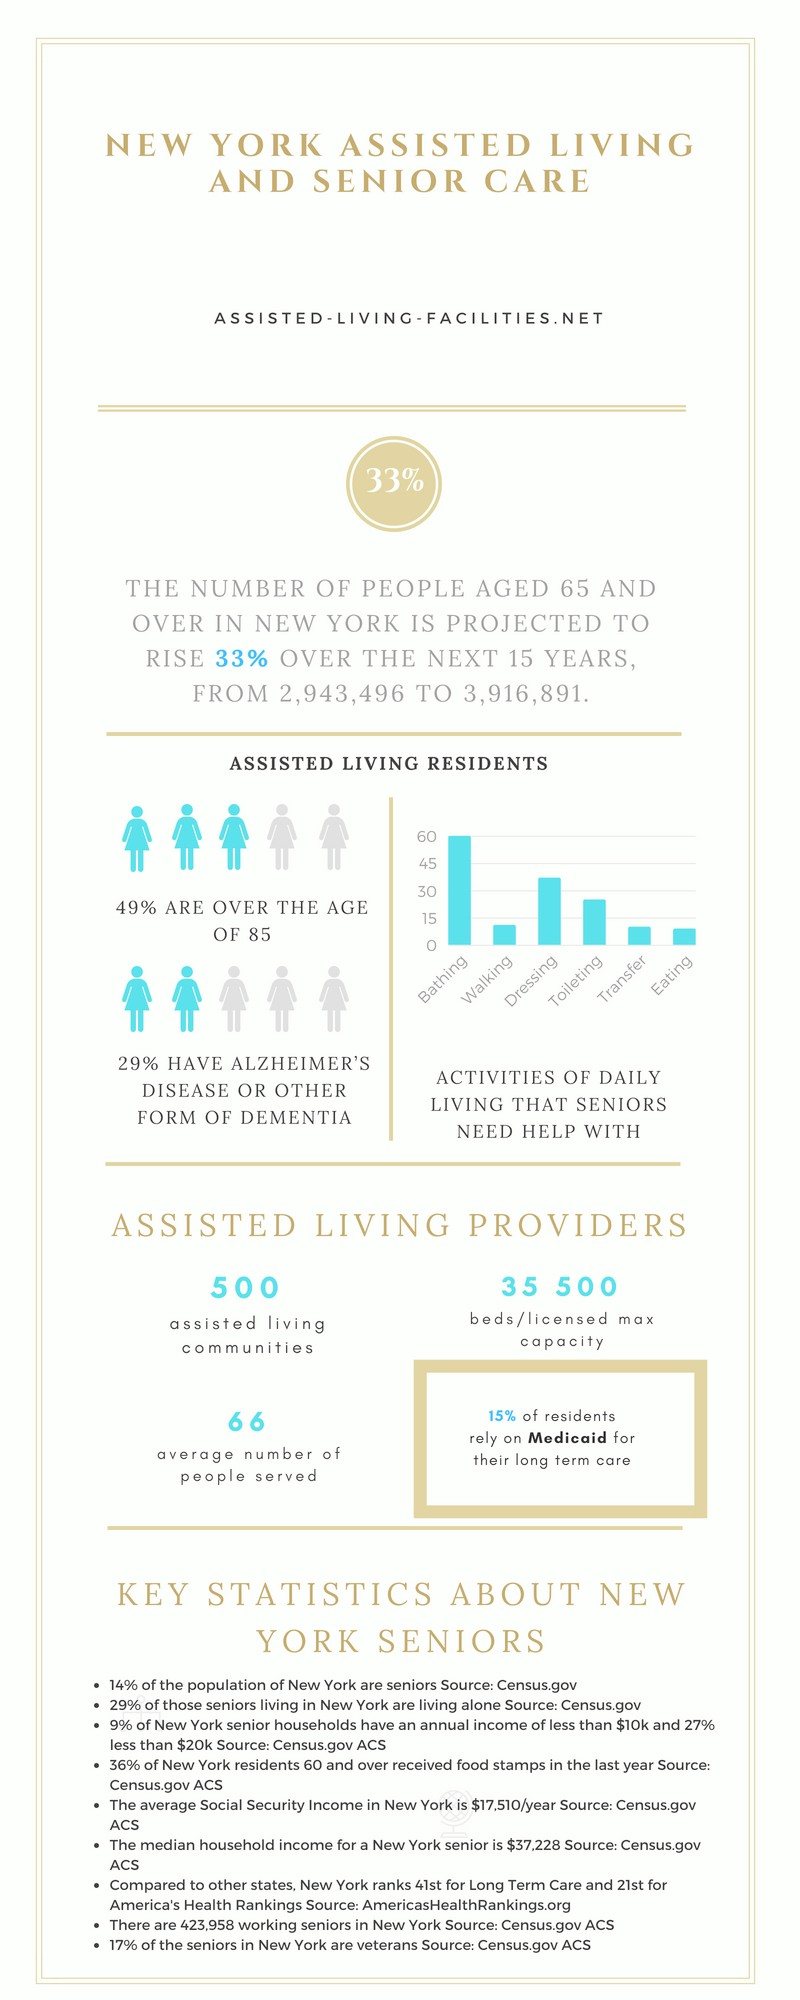 Assisted living facilities in New York